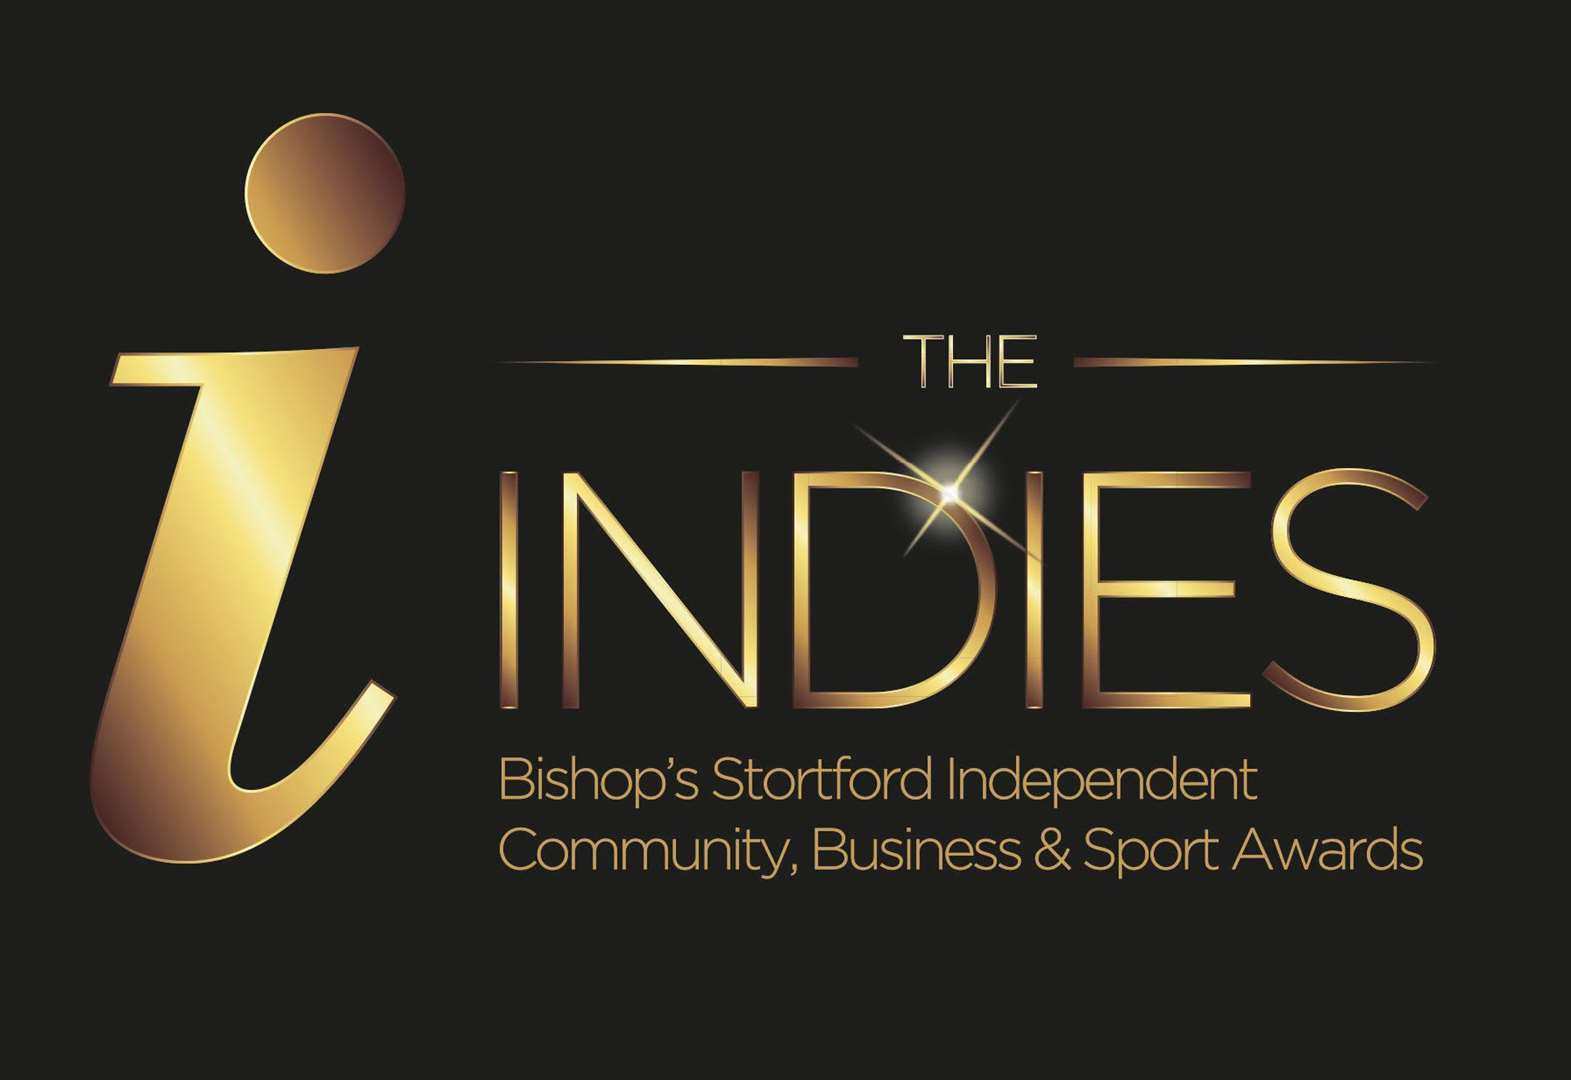 They're back! Nominate your local community hero in the 2019 Indies awards